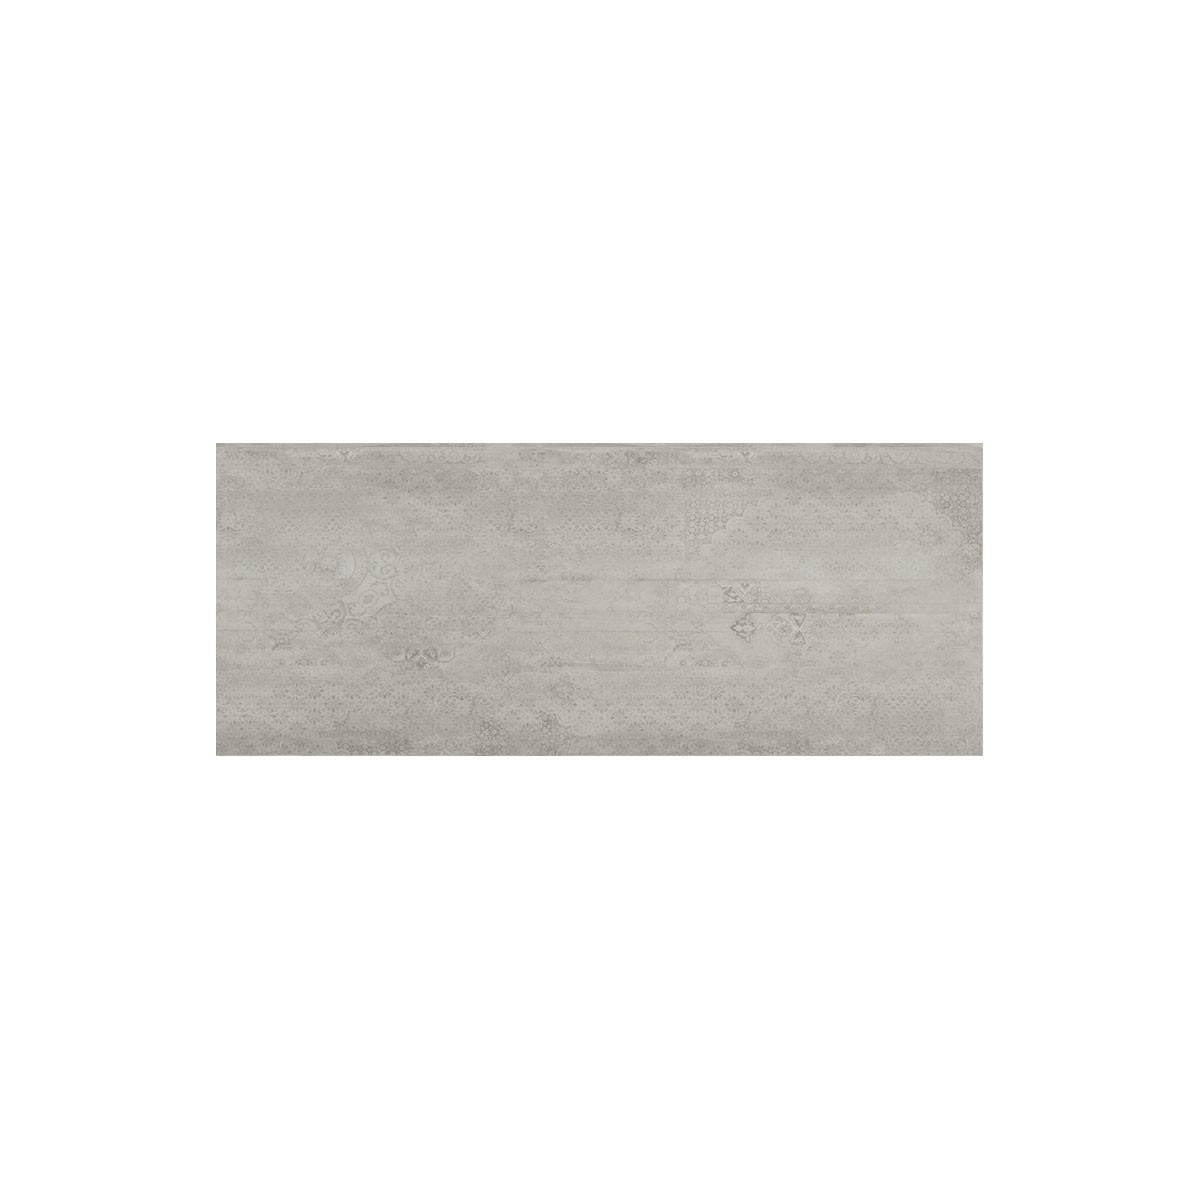 DECORAPORT NWS Wall Panel, Washed Concrete, 3.97'' x7.85'' (NWC-01) (Sample)